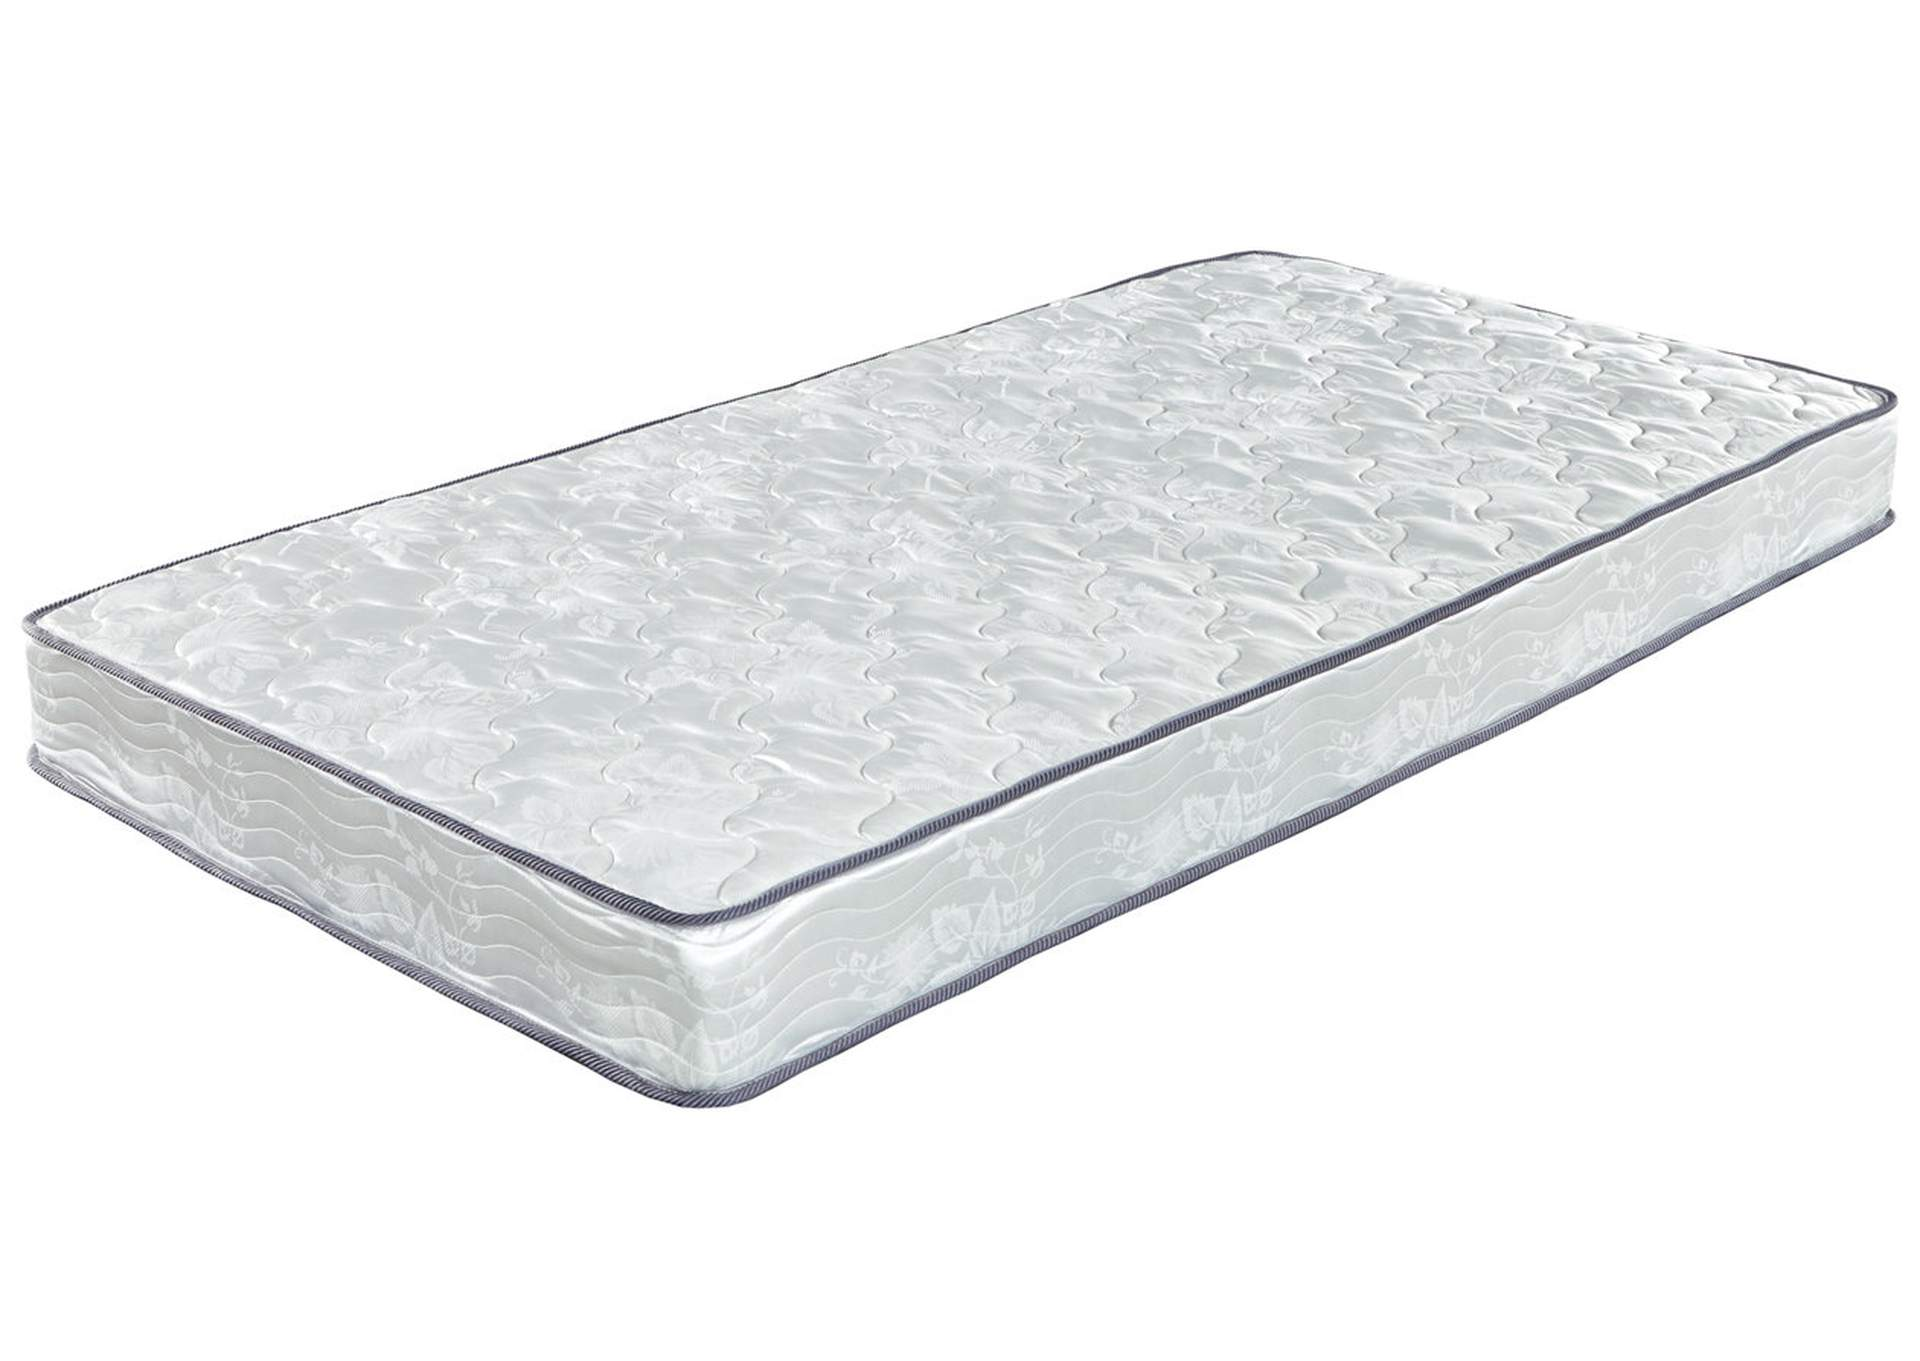 6 Inch Bonell Full Mattress,Direct To Consumer Express